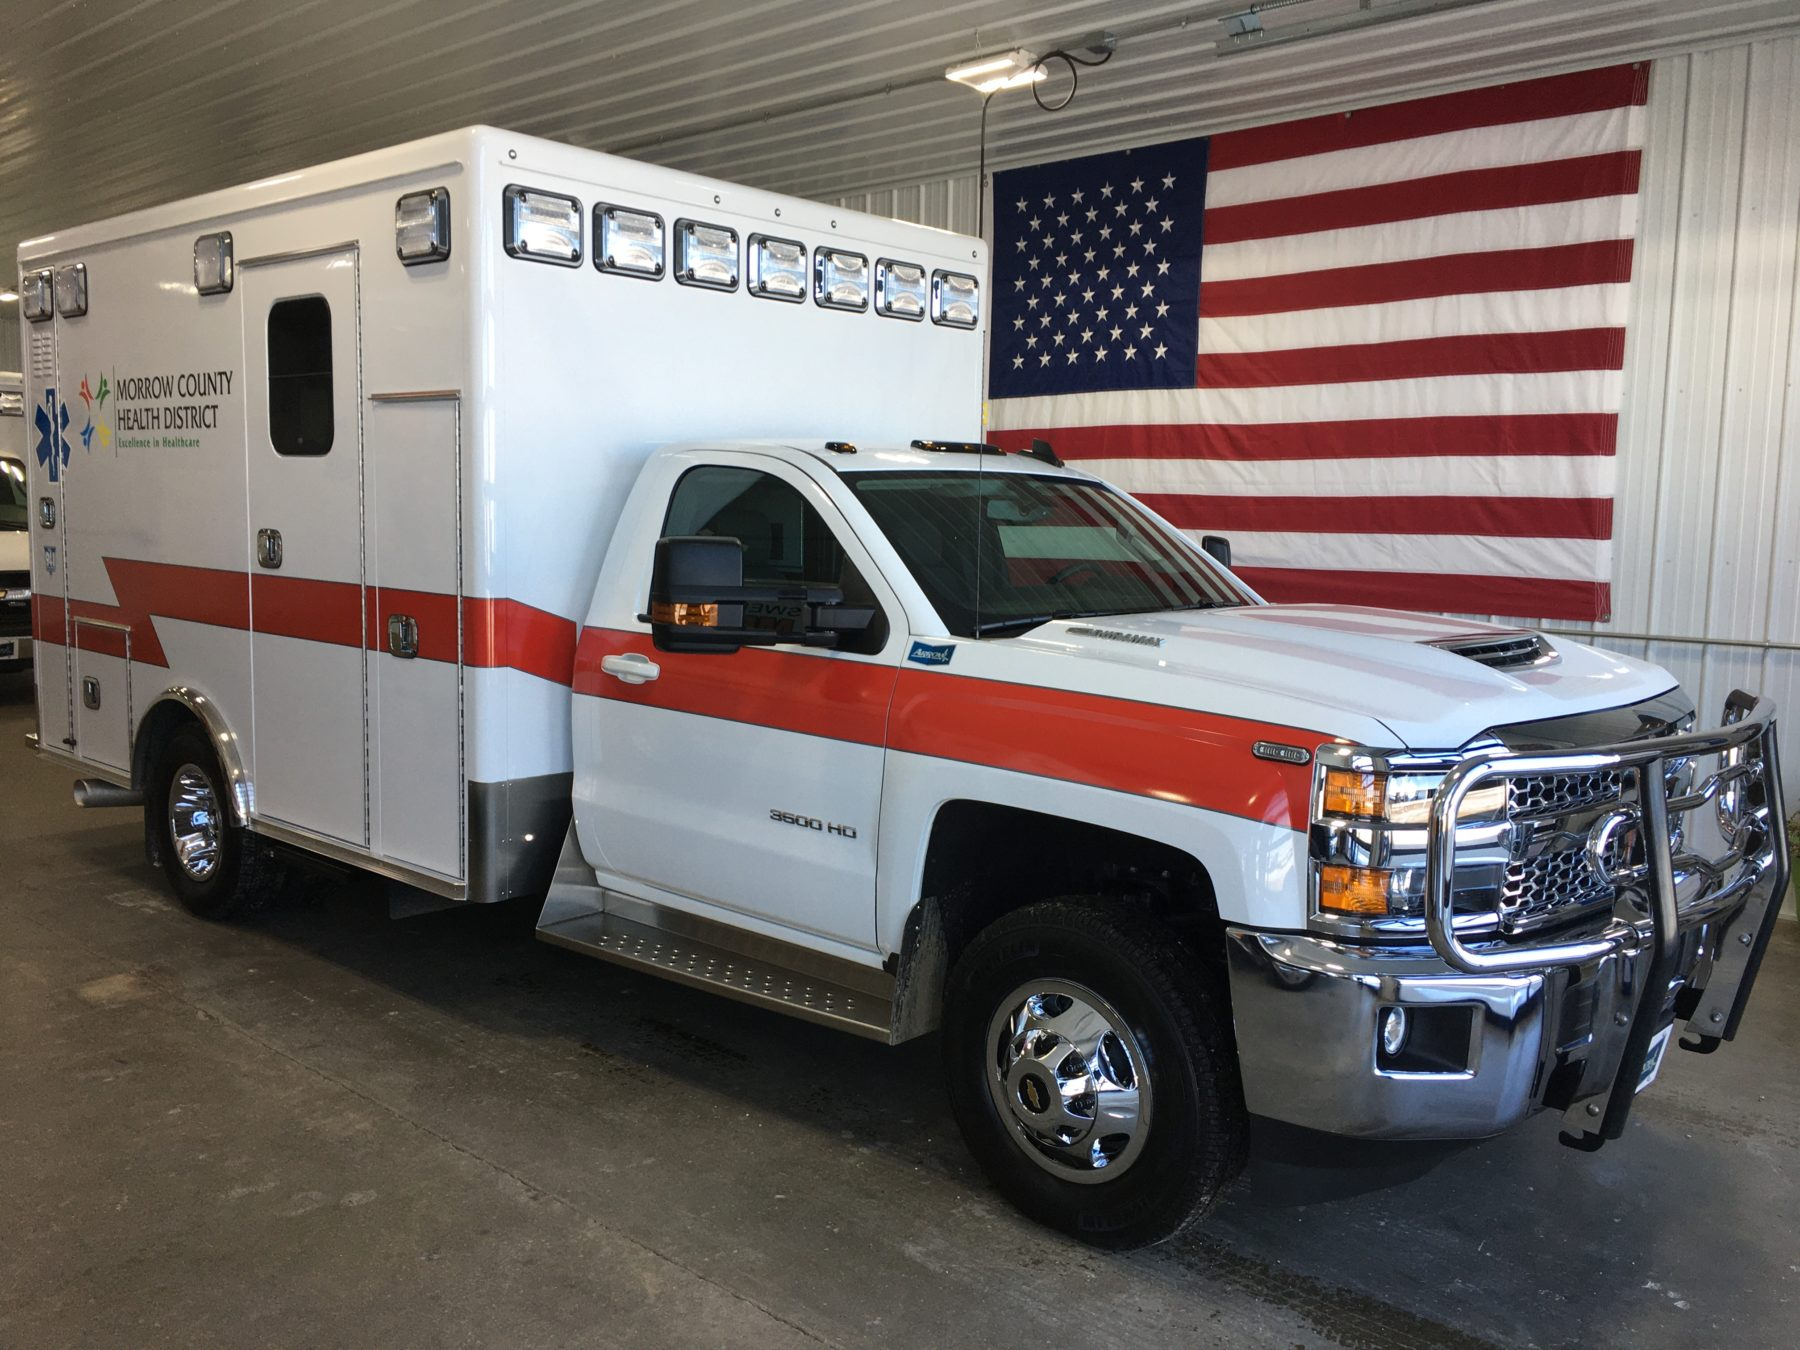 2019 Chevrolet K3500 4x4 Type 1 Ambulance For Sale – Picture 1